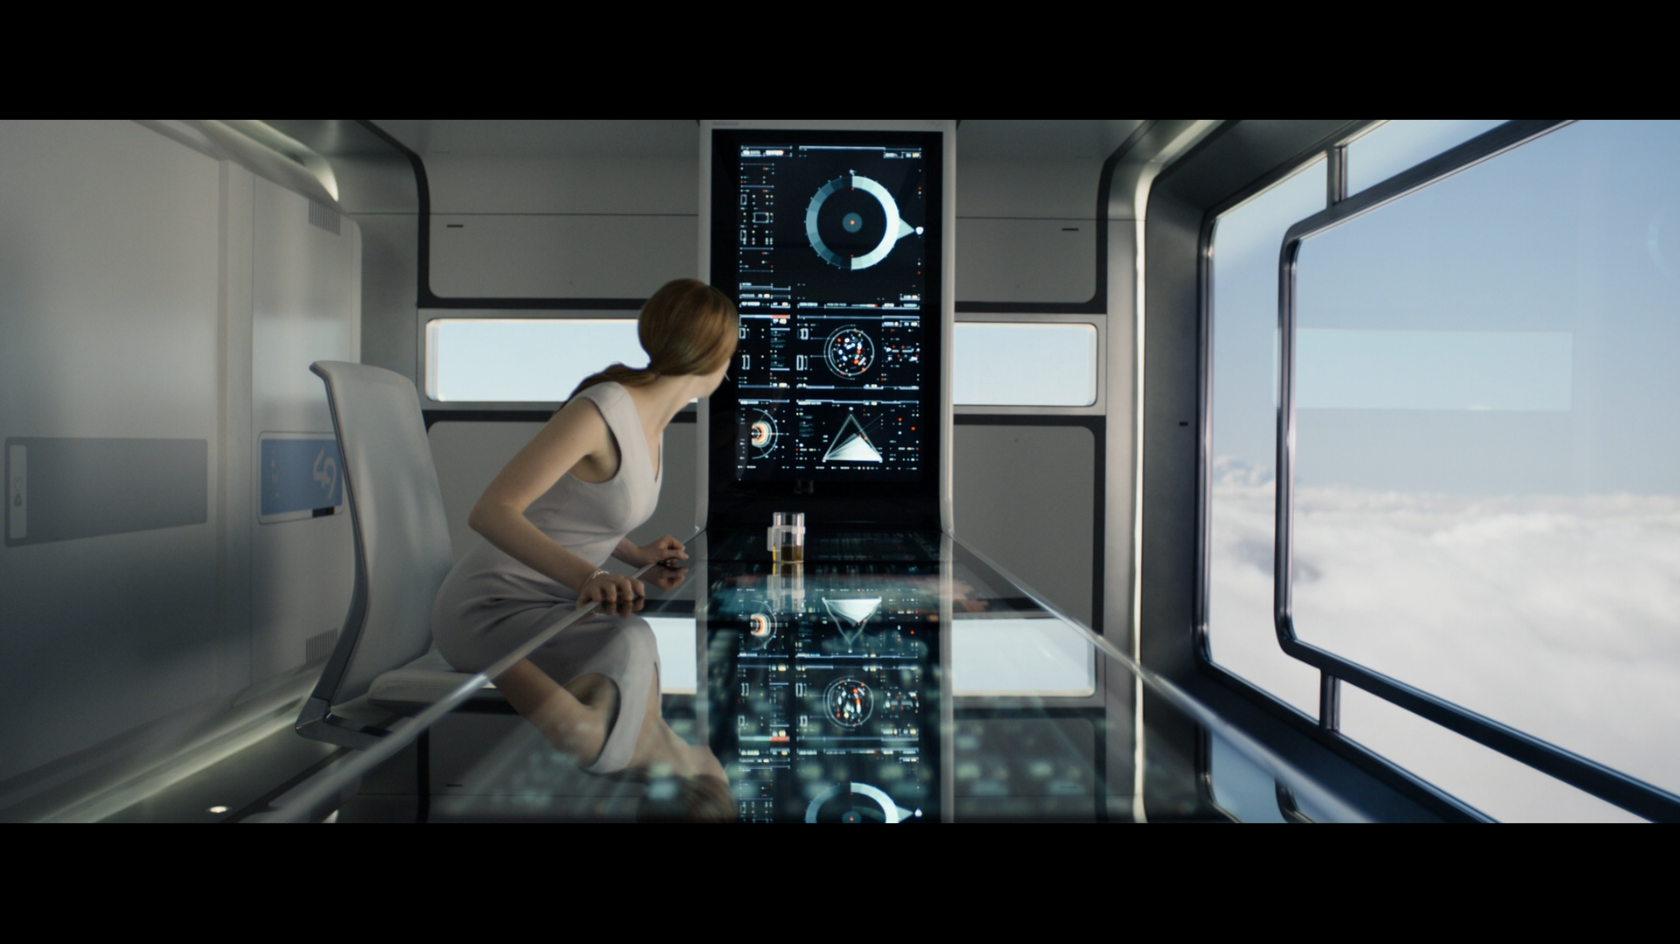 Victoria seated at a large touch-based interface design in the movie Oblivion